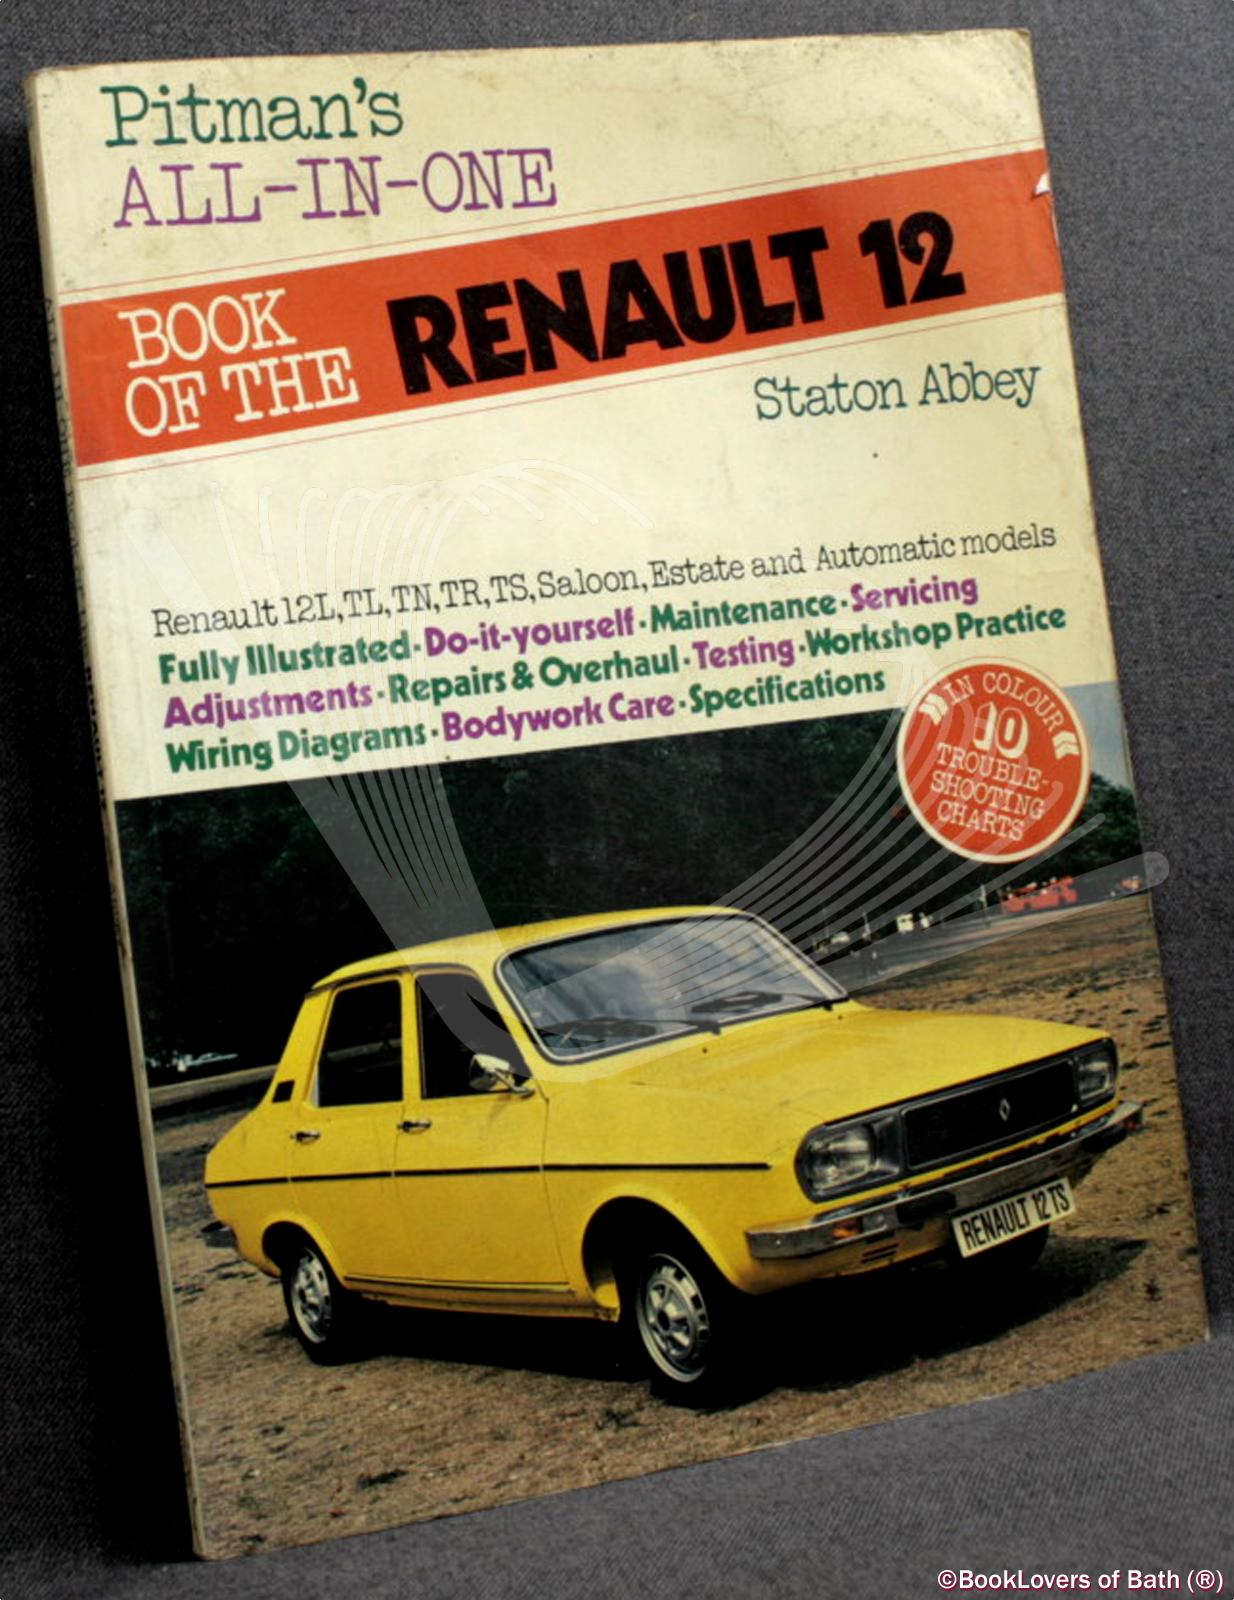 all in one book of the renault 12 a maintenance, fault tracing and